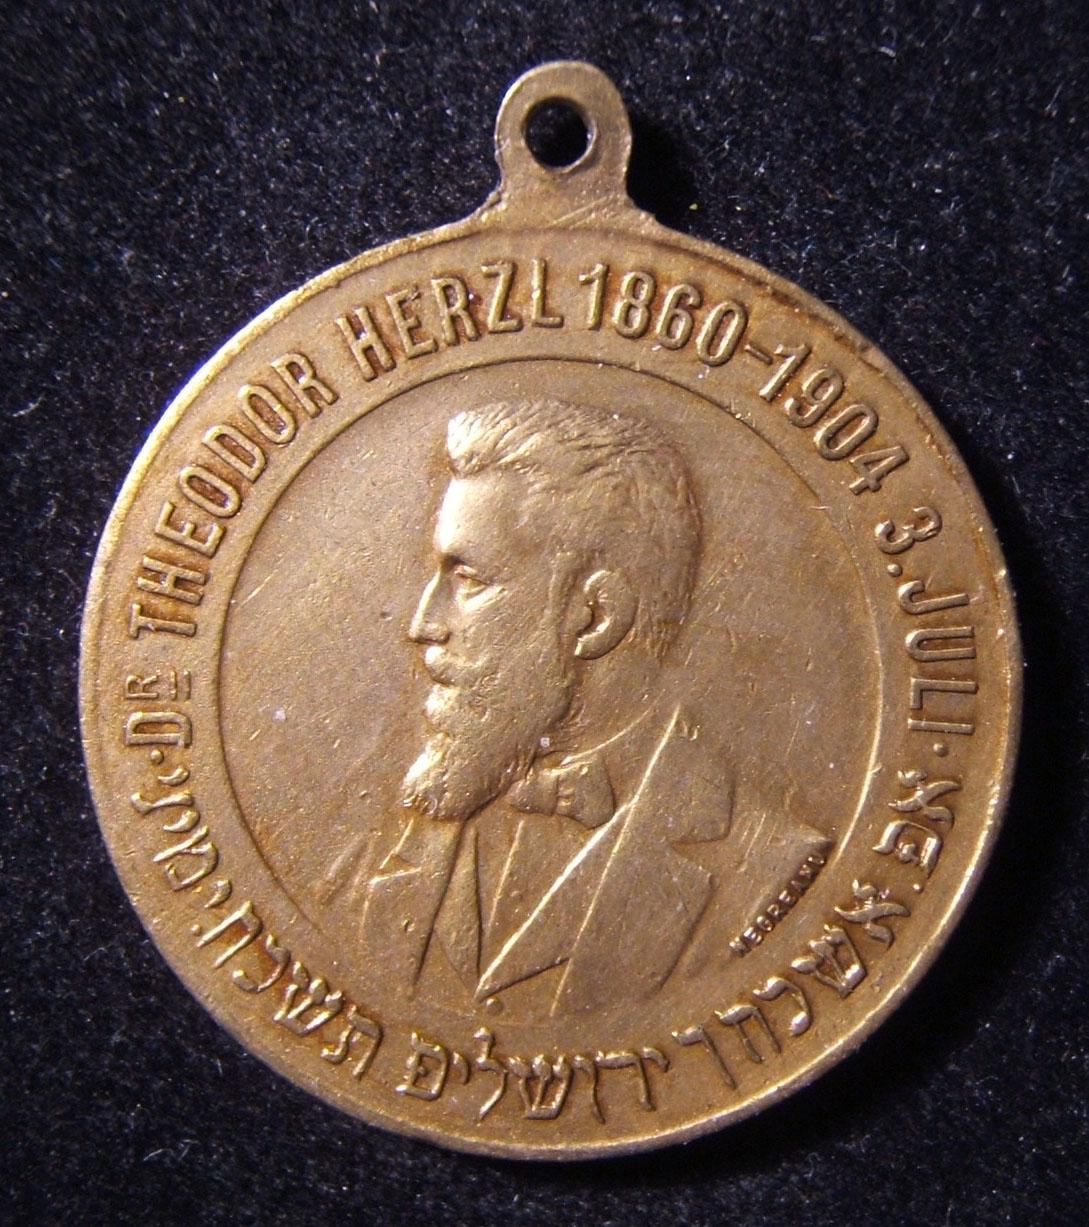 Romania: Herzl death commemoration token by Negreanu, circa. 1904